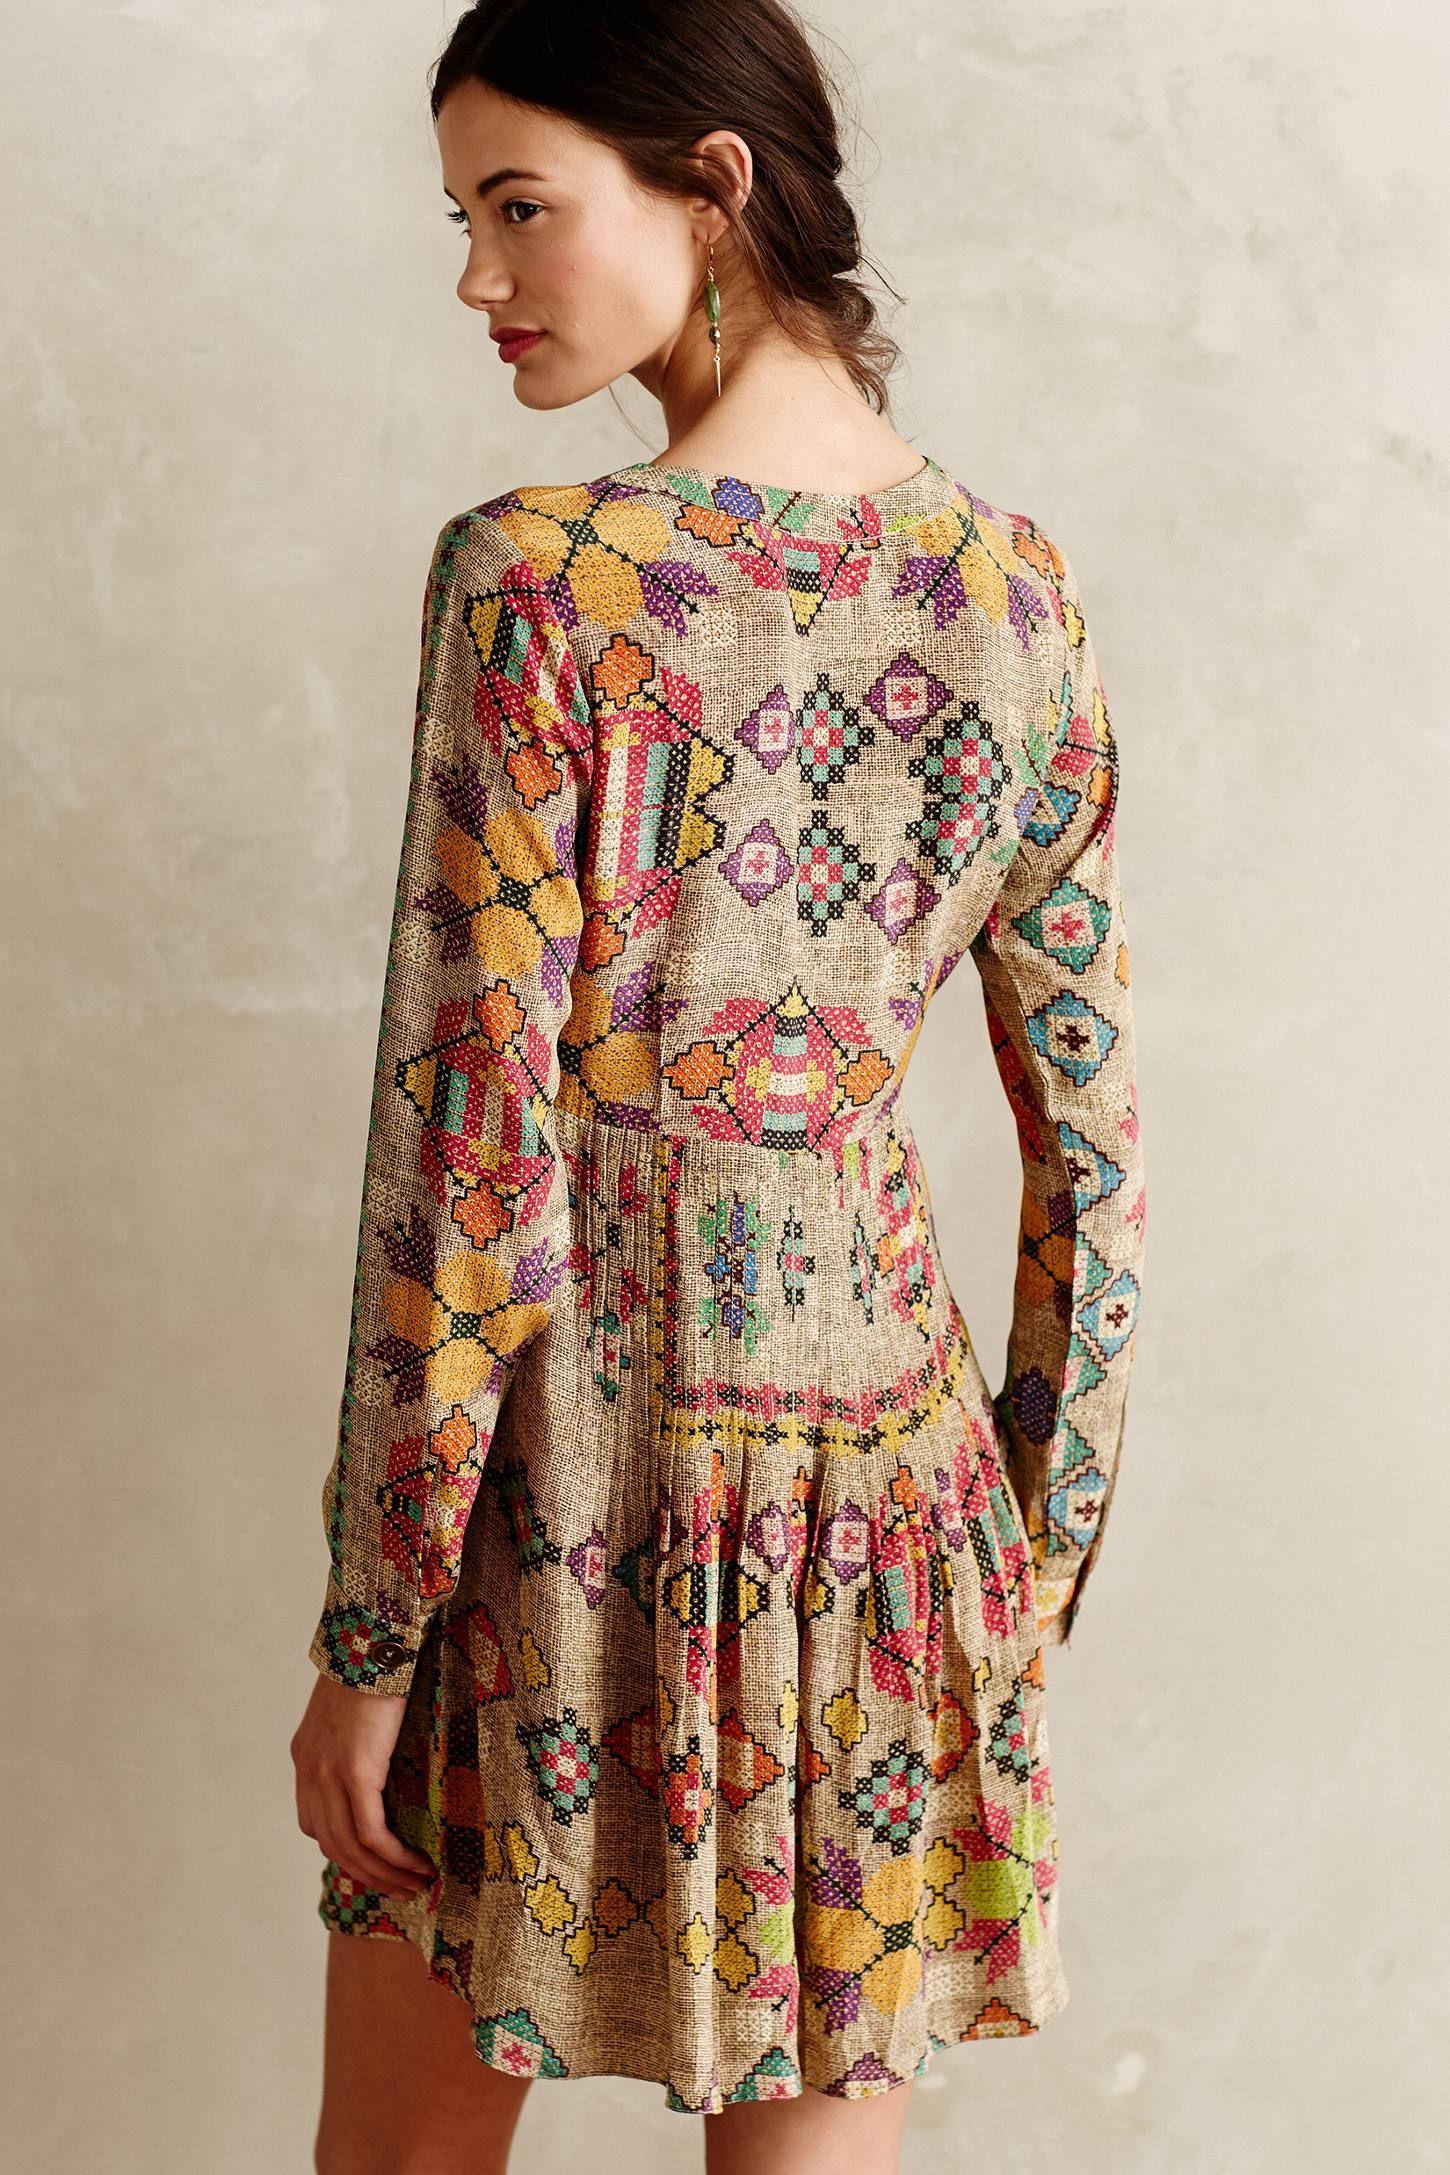 http://www.anthropologie.com/anthro/product/clothes-dresses/4130337191499.jsp